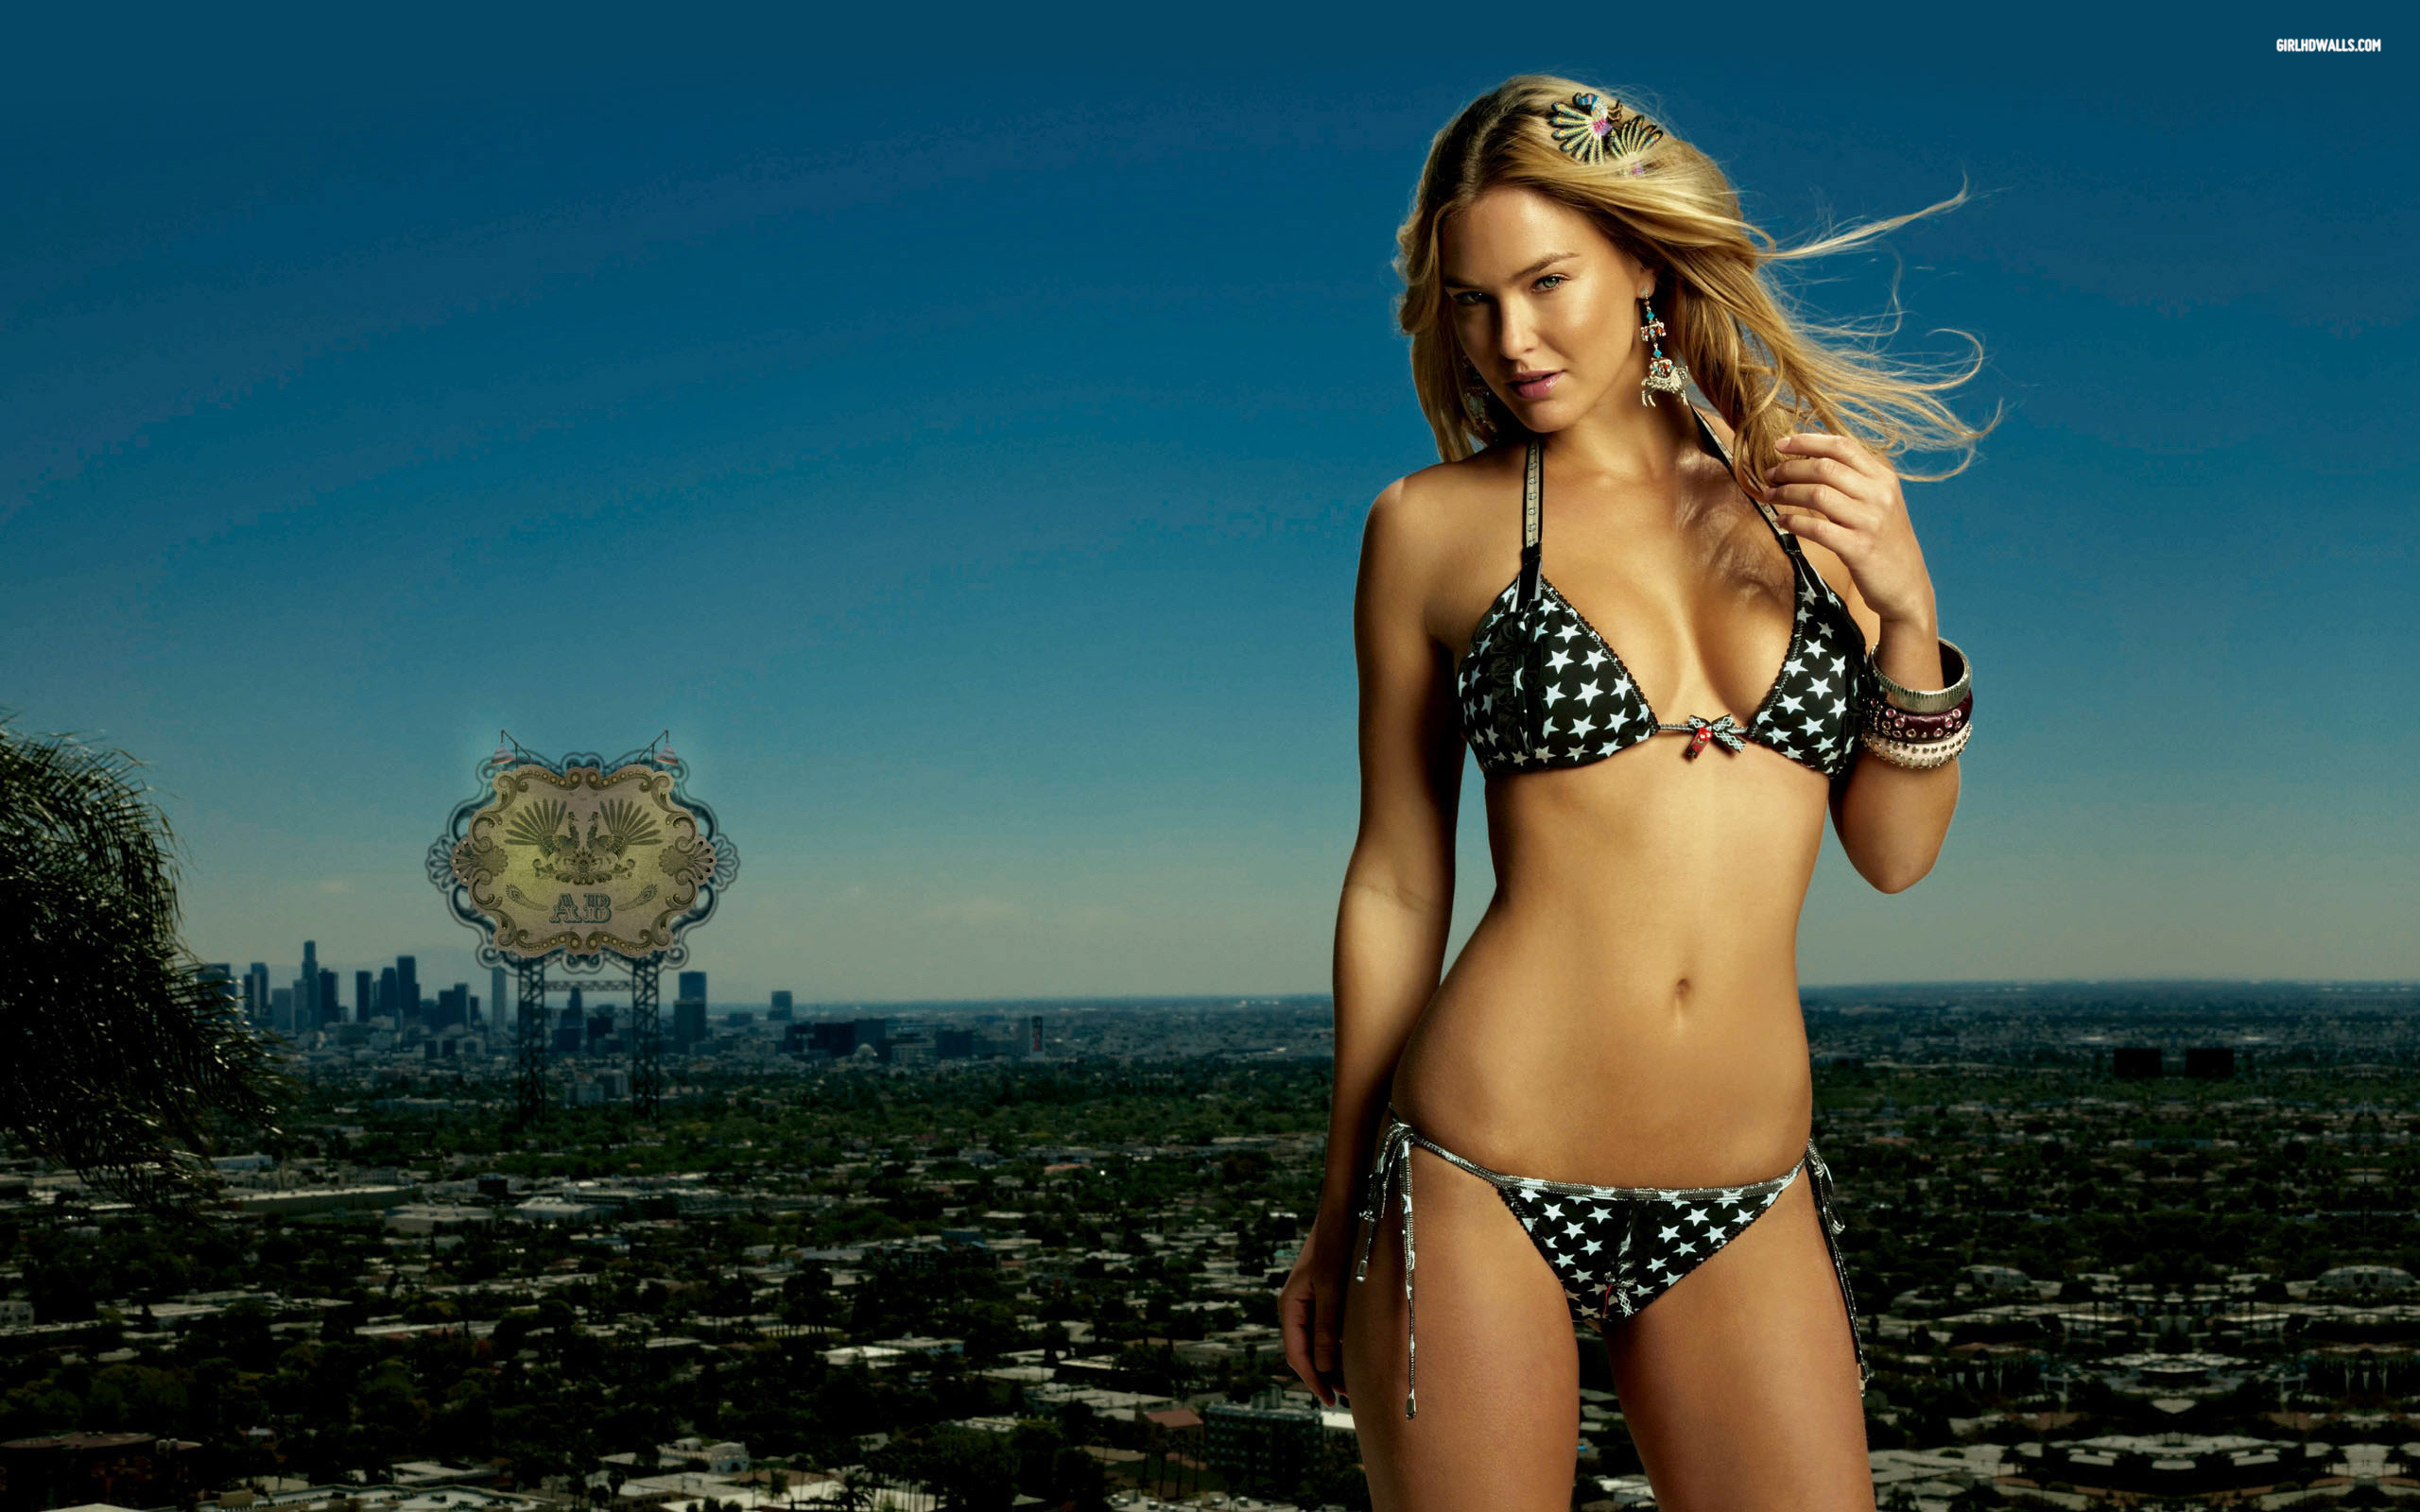 Bar refaeli wallpapers pictures images - Hd bikini wallpapers for pc ...